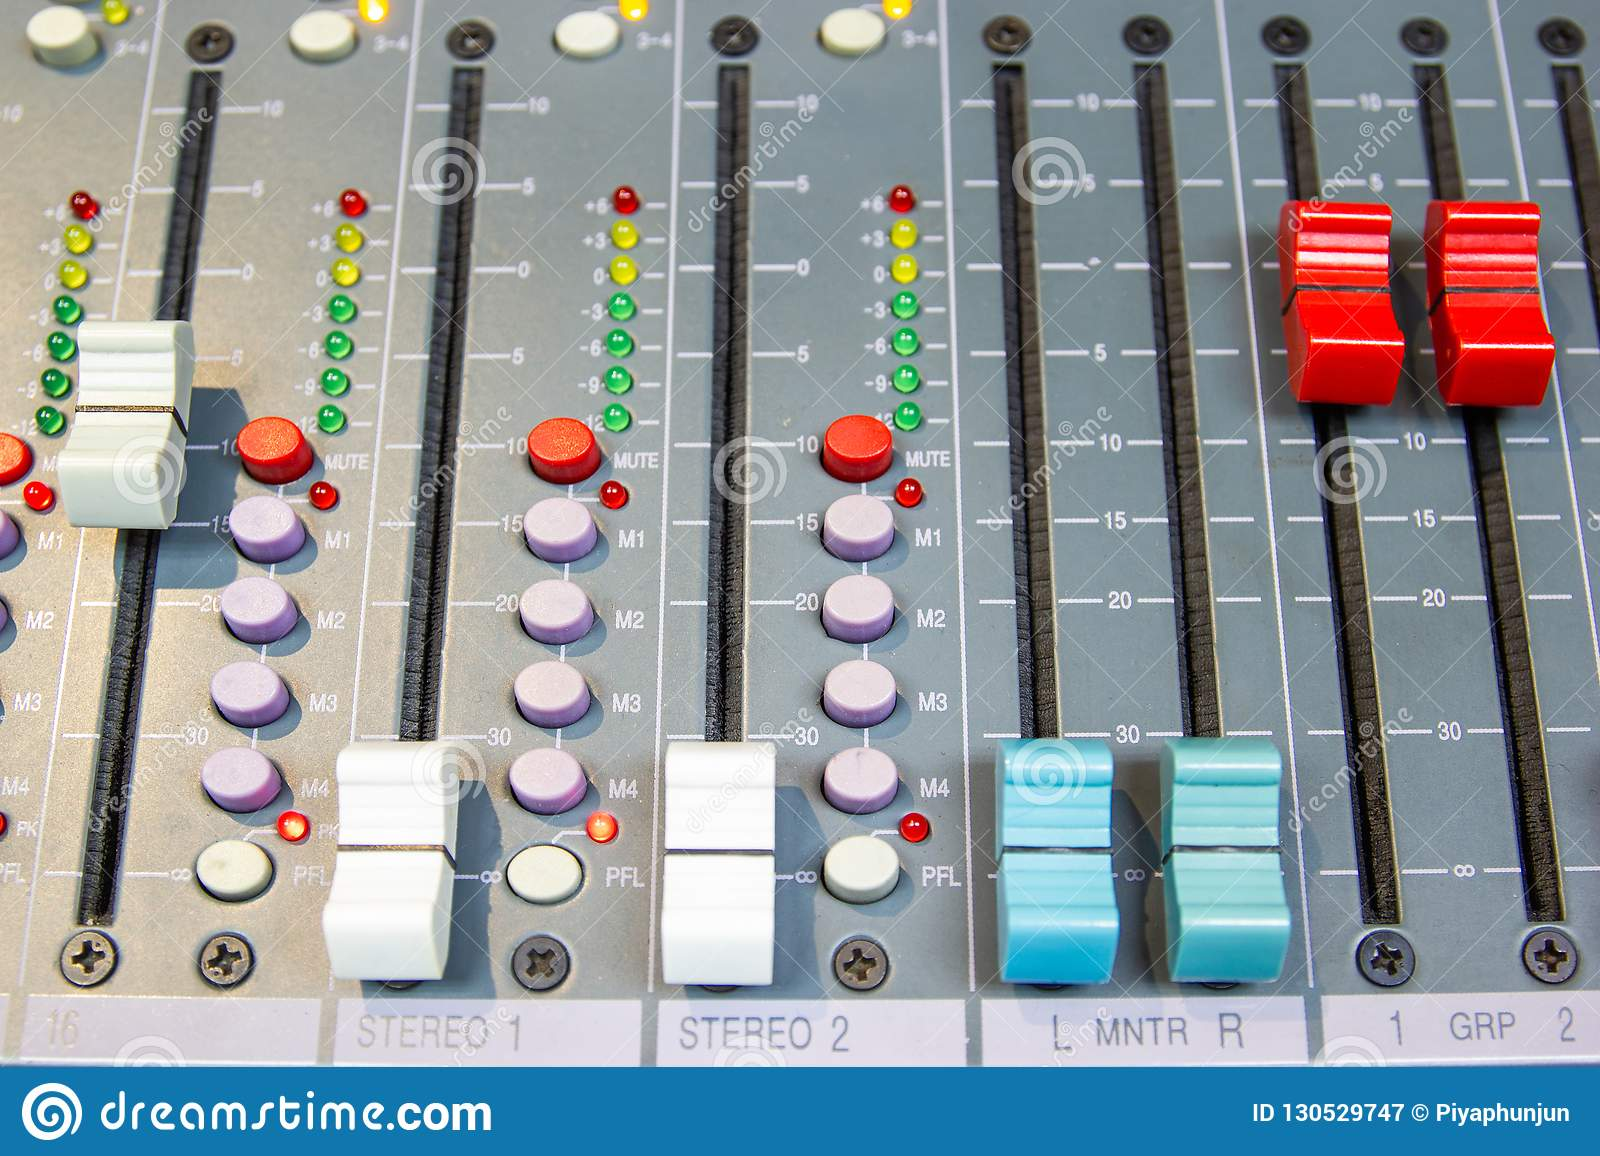 Close up Mixing Console of a big HiFi system, The audio equipment and control panel